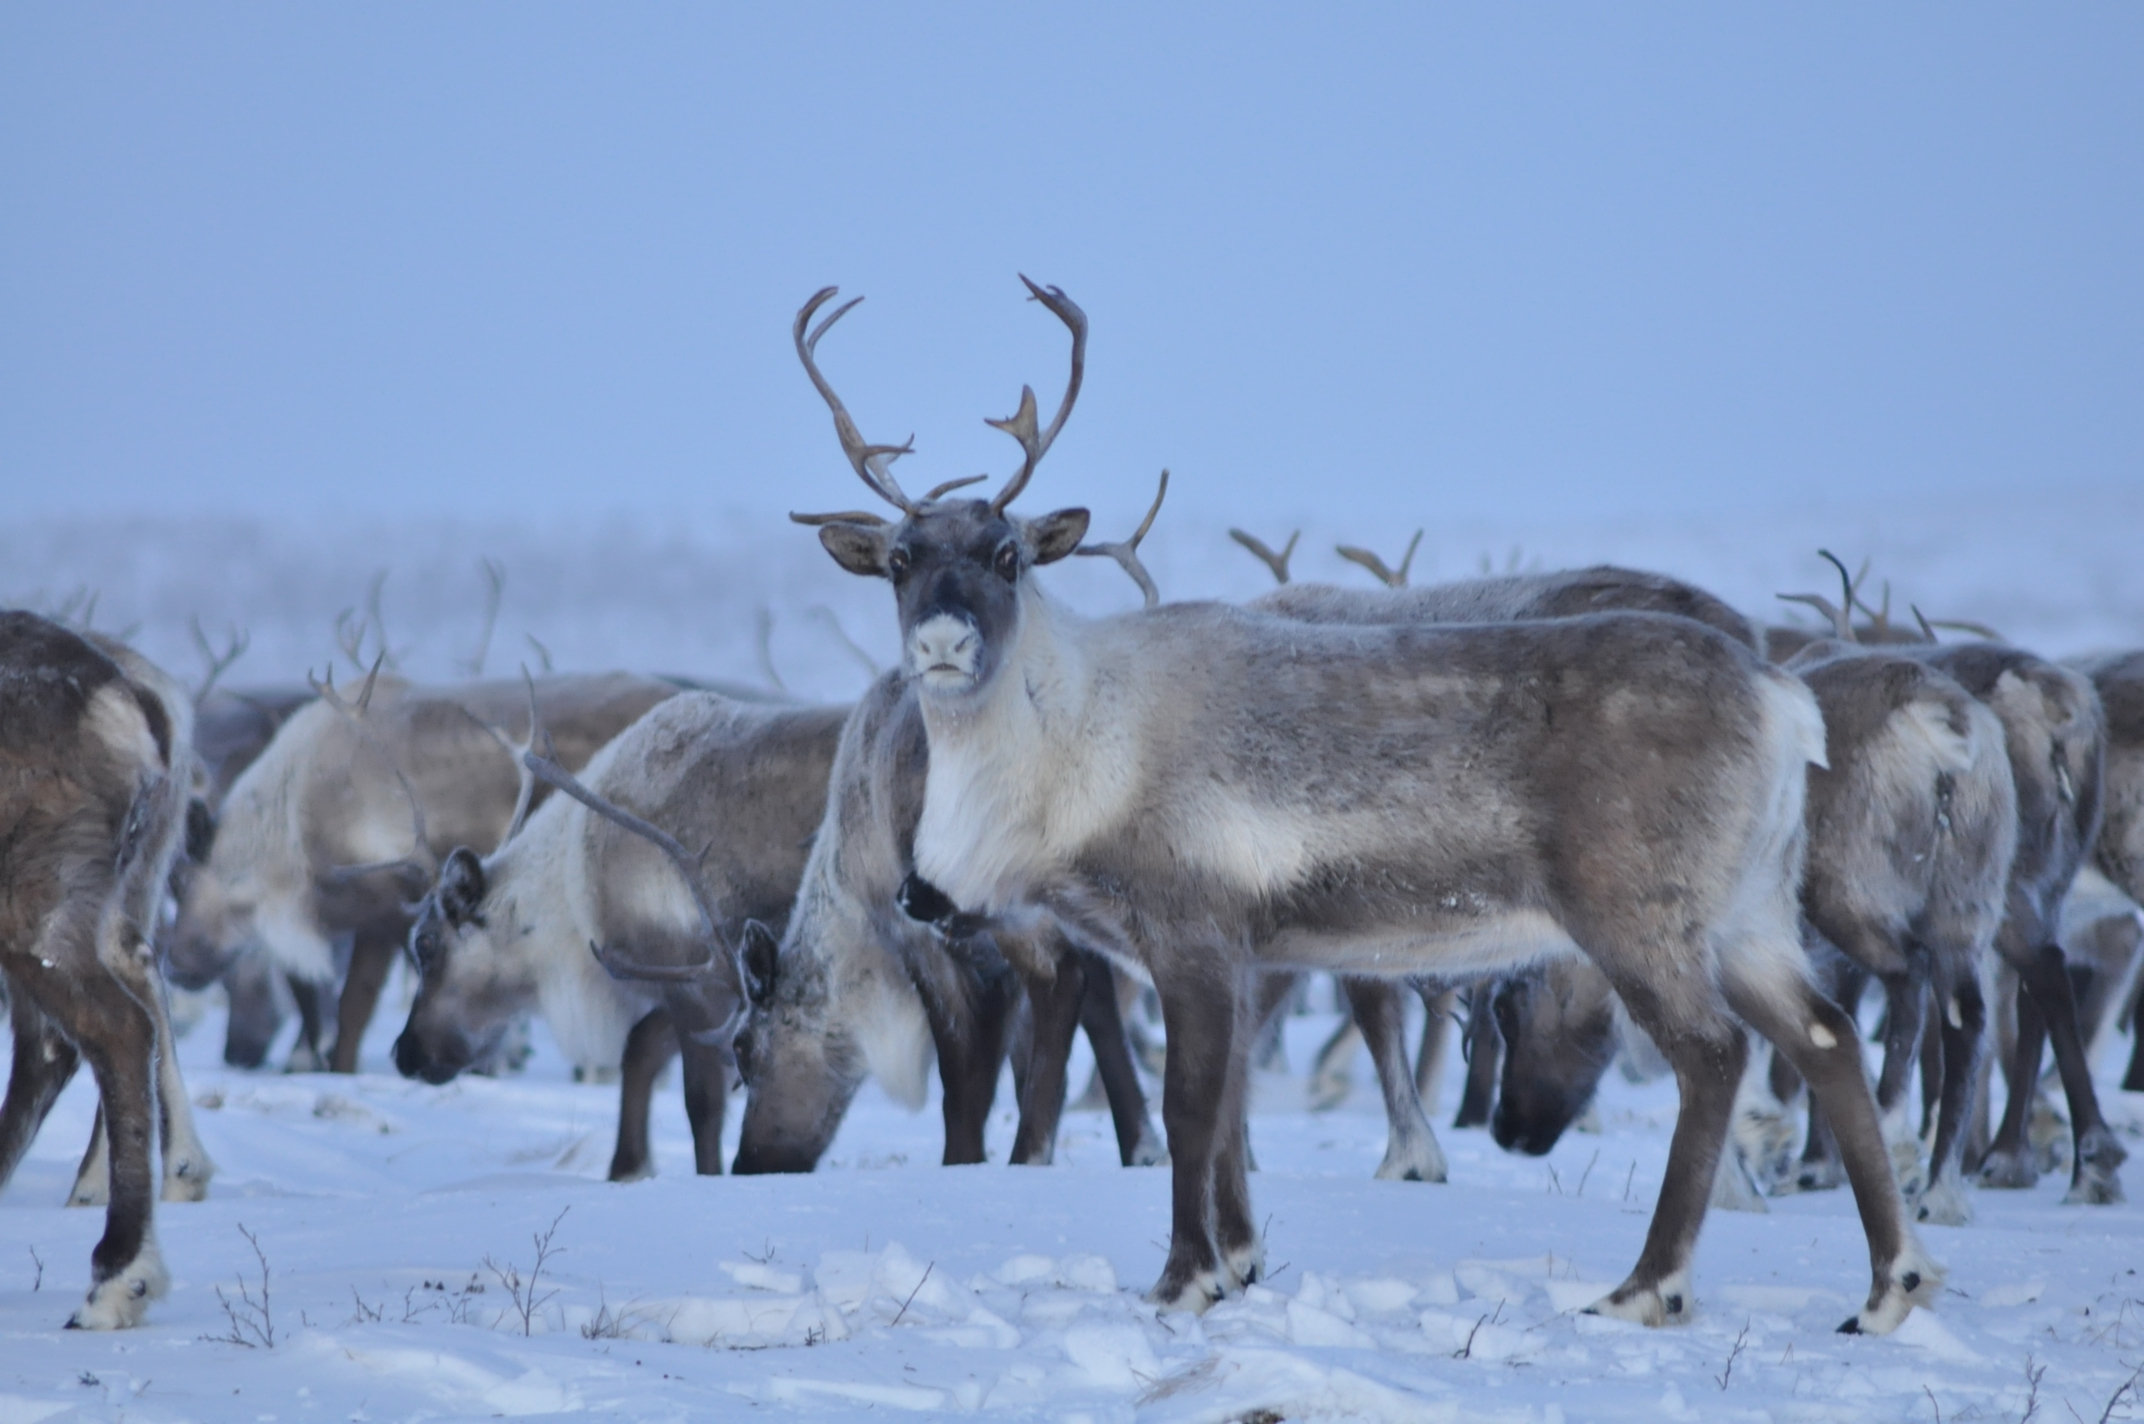 The Reindeer also known as caribou | pgcps mess - Reform ...